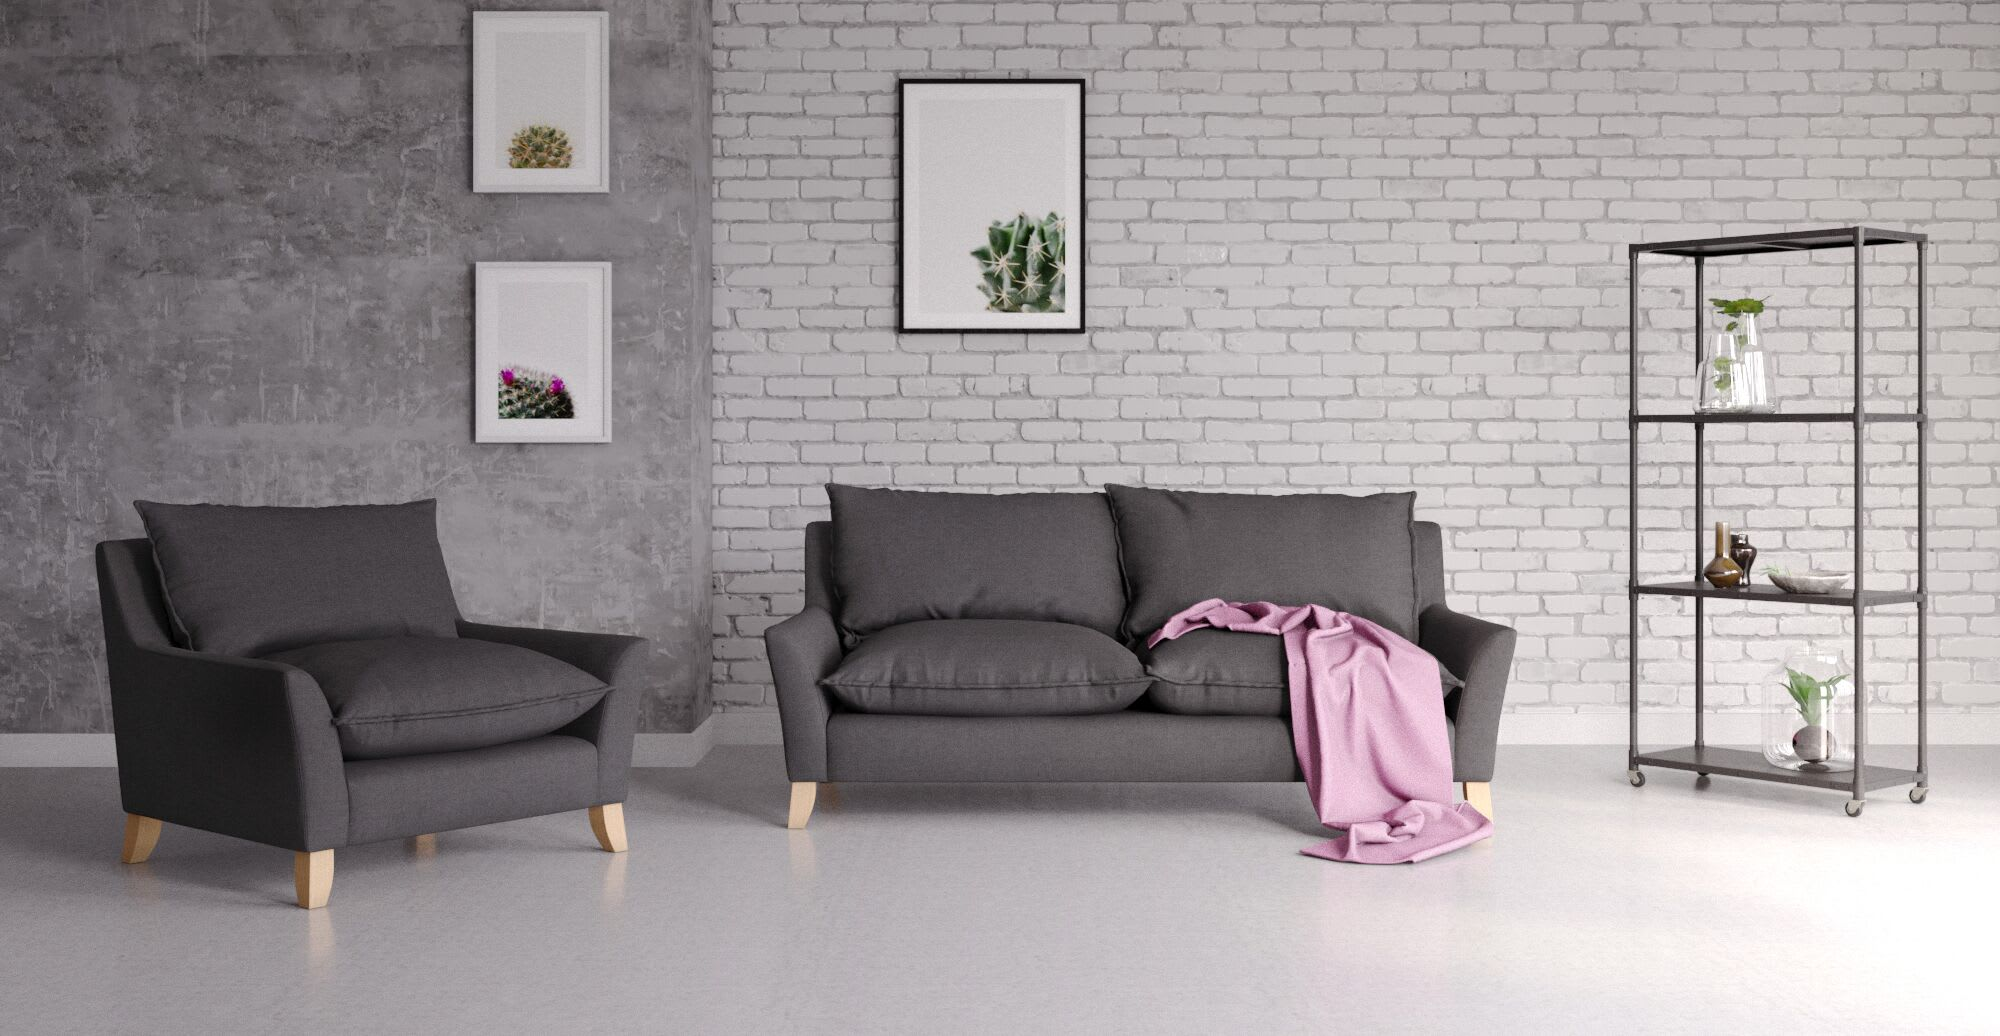 A Cabriole sofa in a designed space